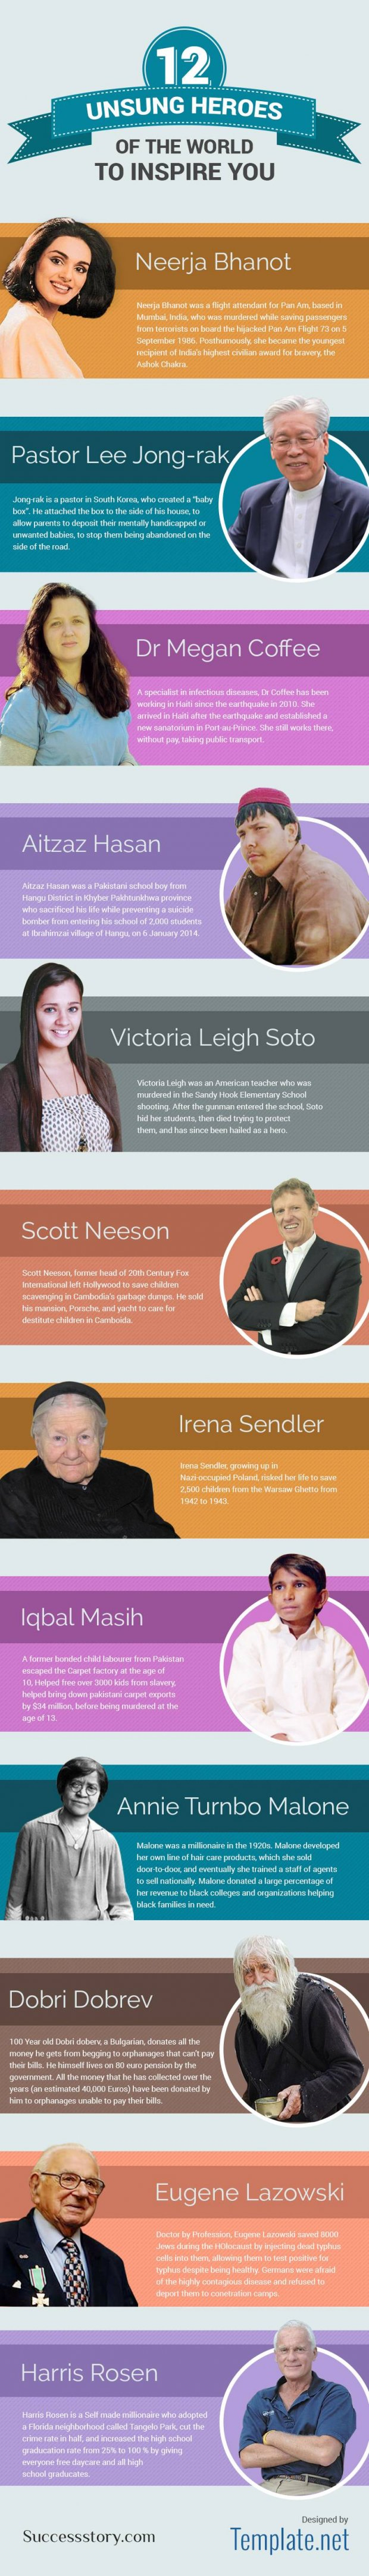 Unsung Heroes Of The World To Inspire You Infographic